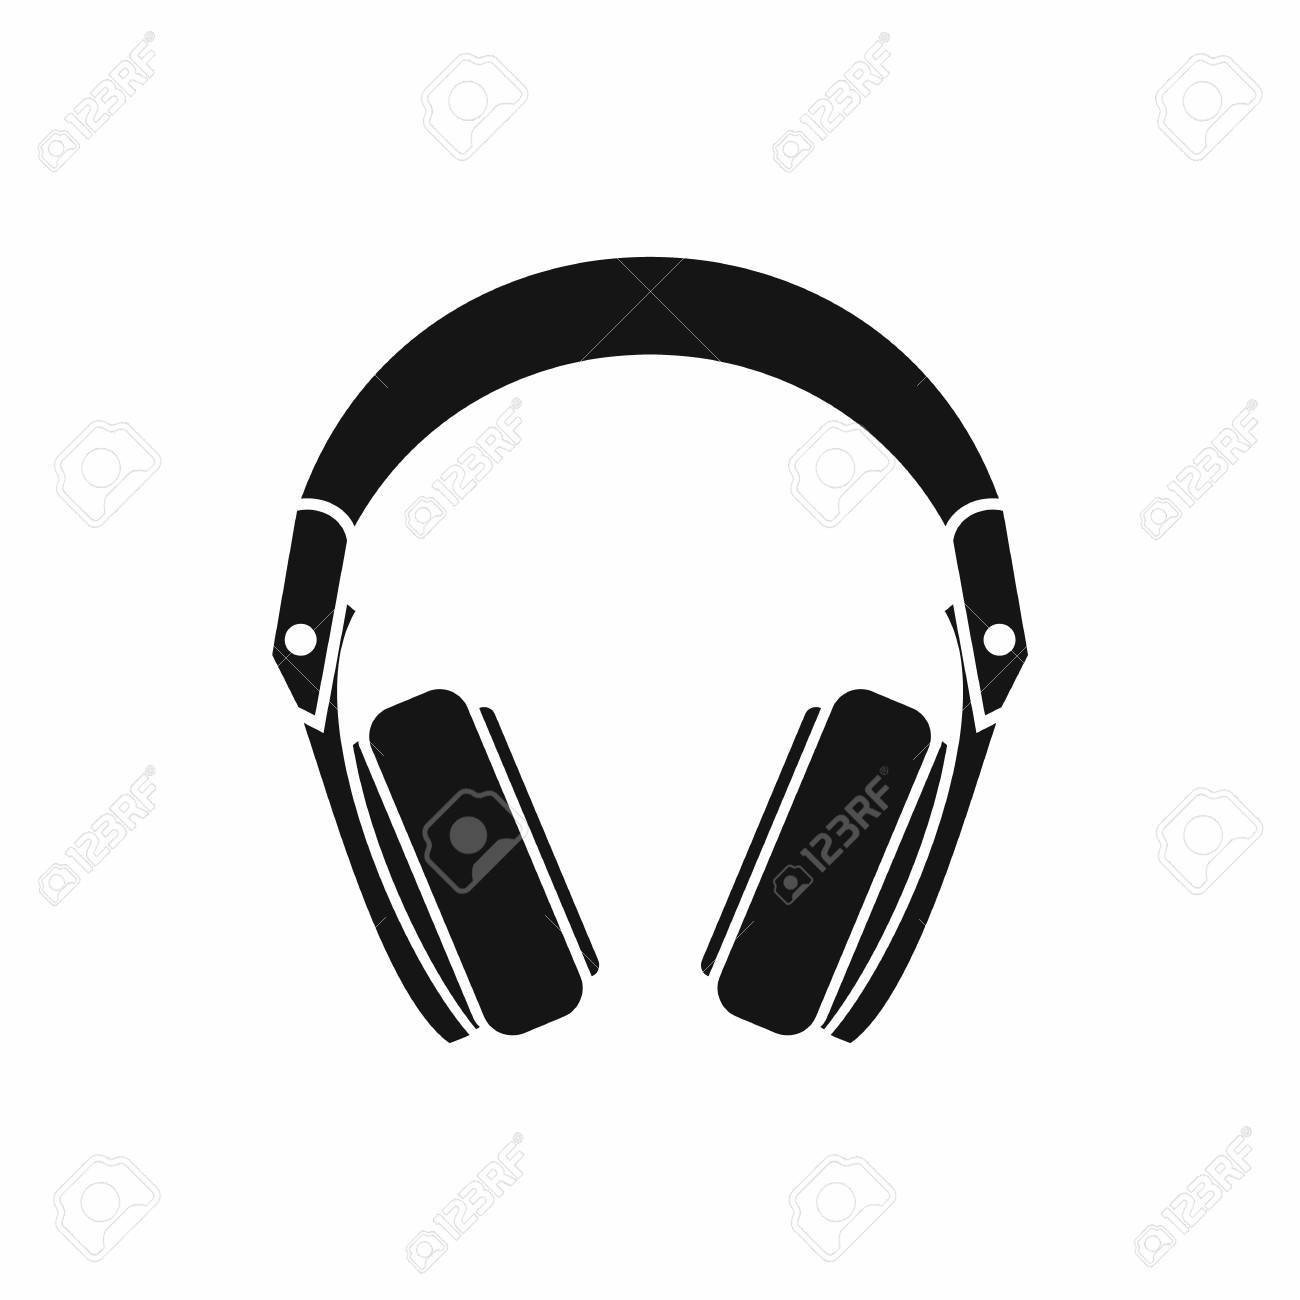 Headphones icon in simple style isolated vector illustration - 60275296